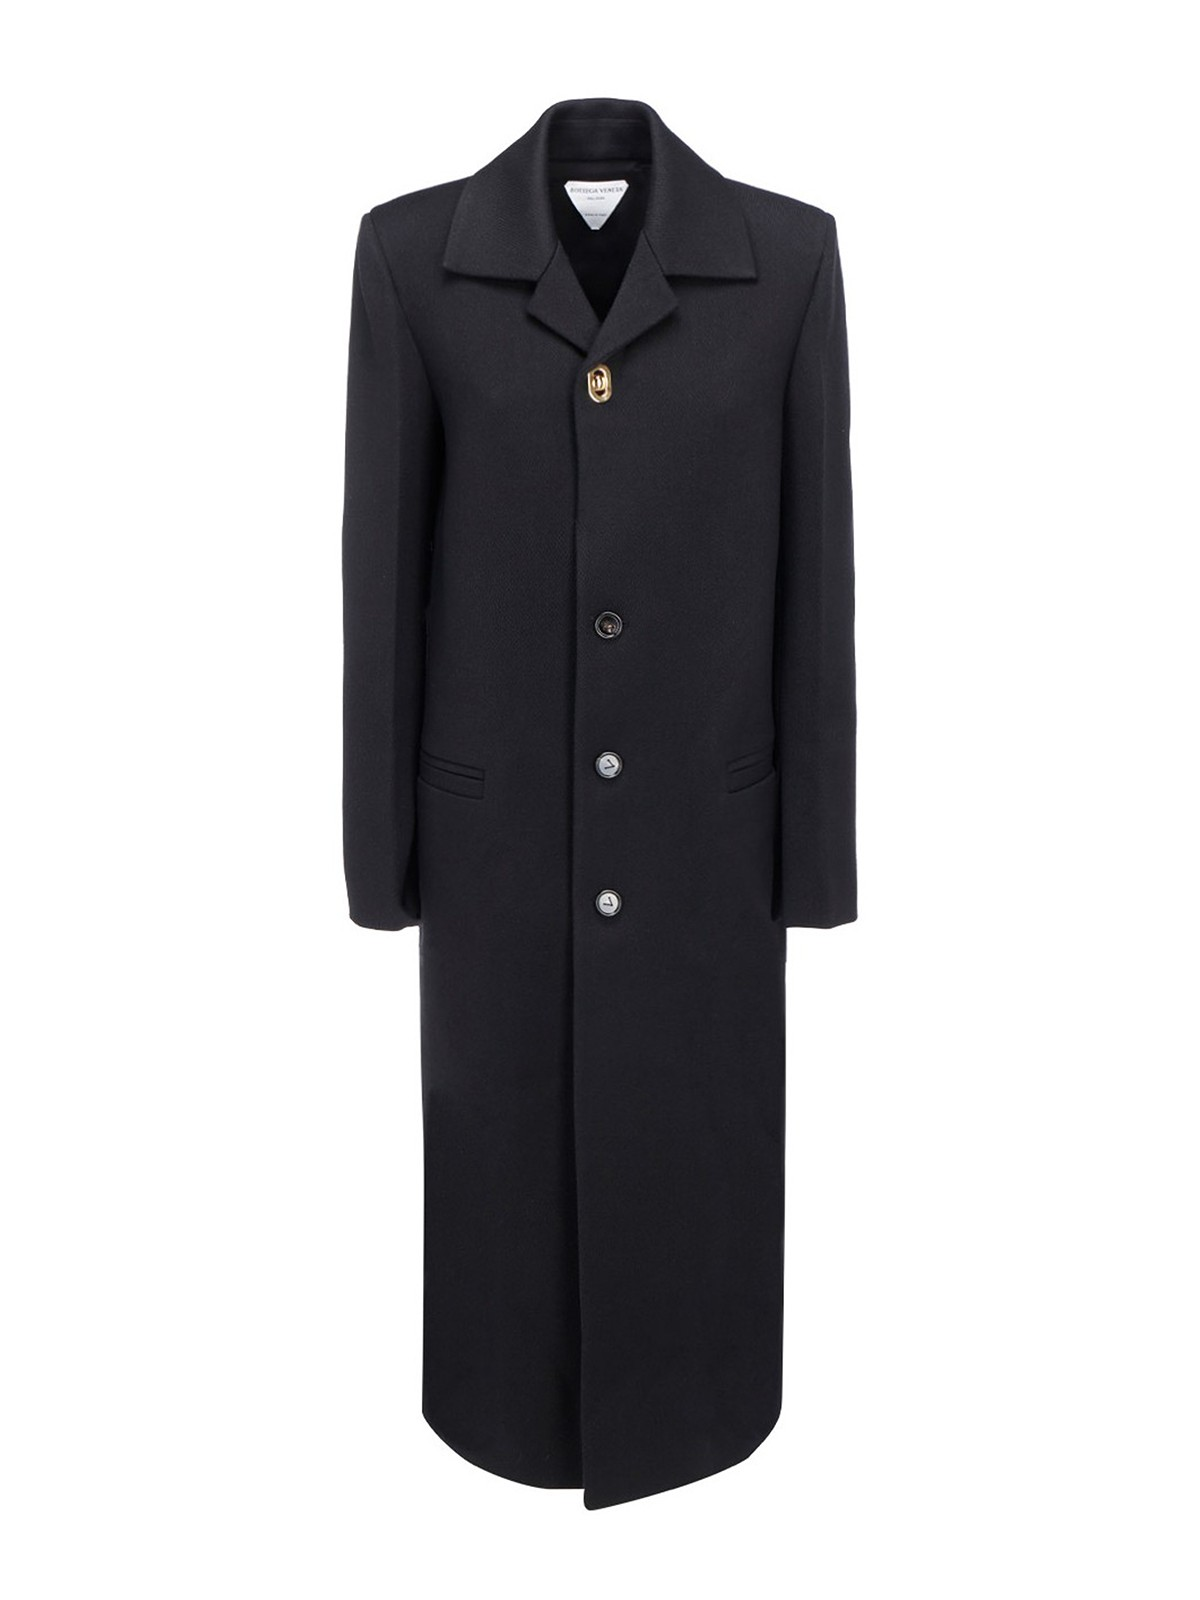 BOTTEGA VENETA WOOL BLENDCOAT